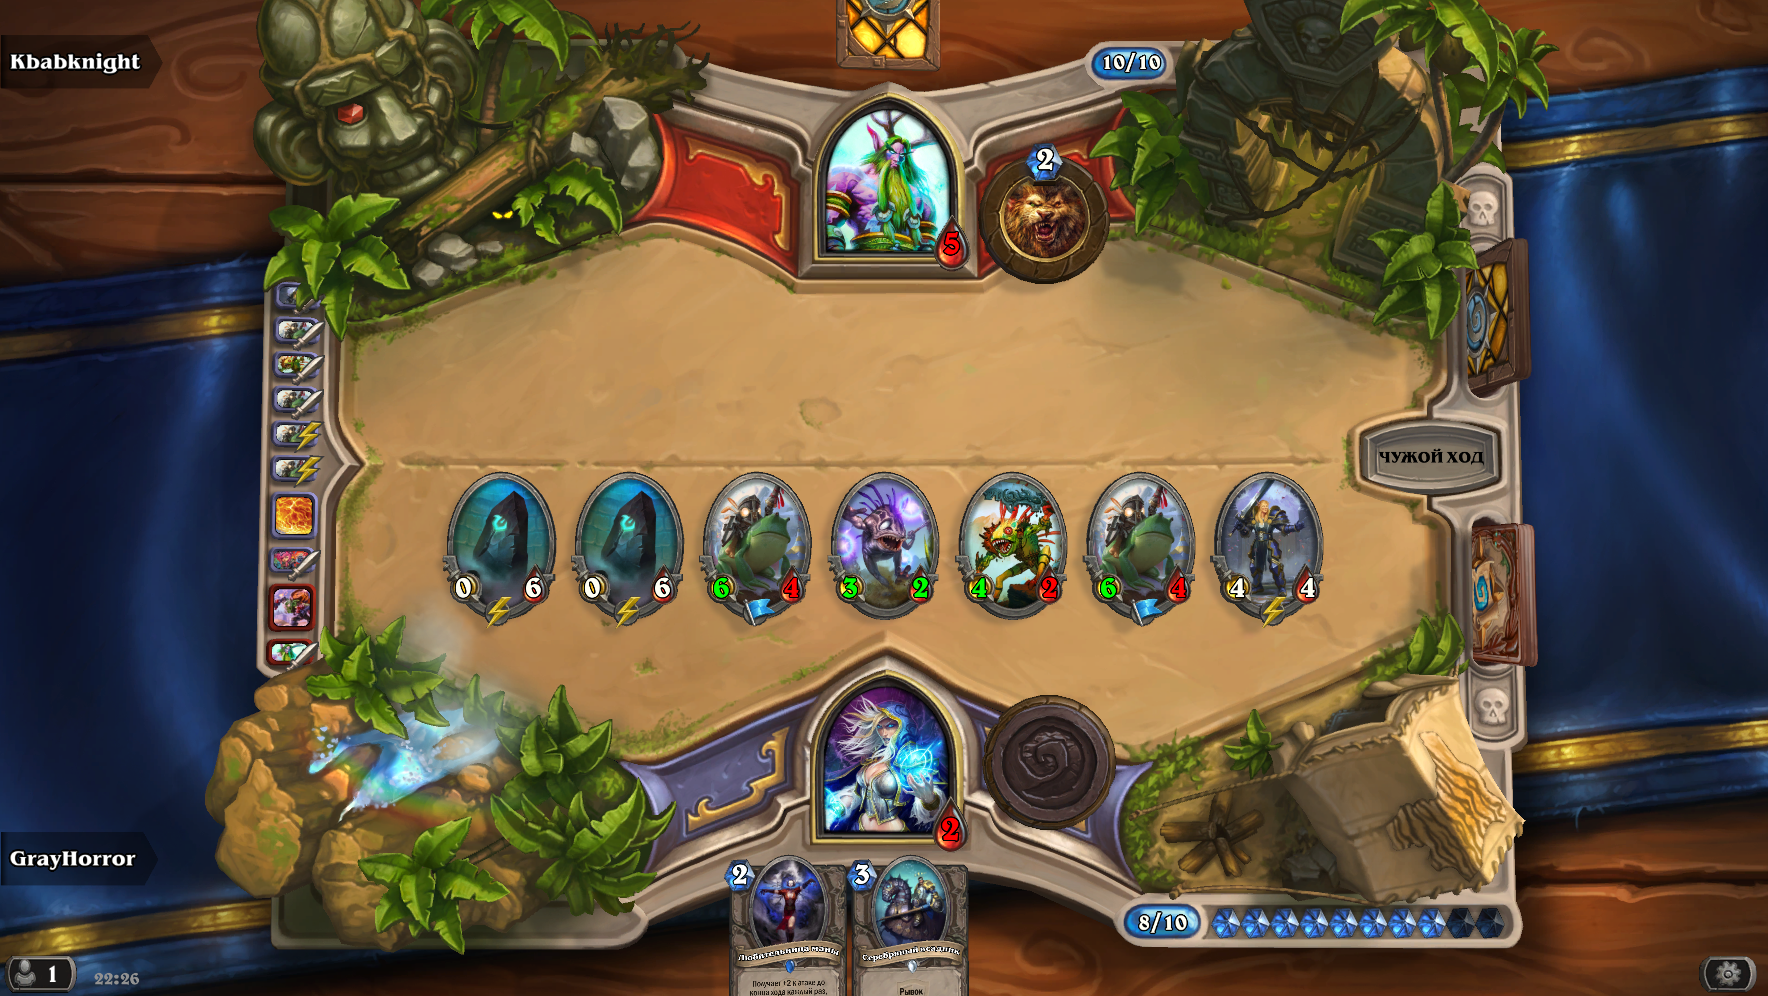 Hearthstone Screenshot 04-01-16 22.26.45.png